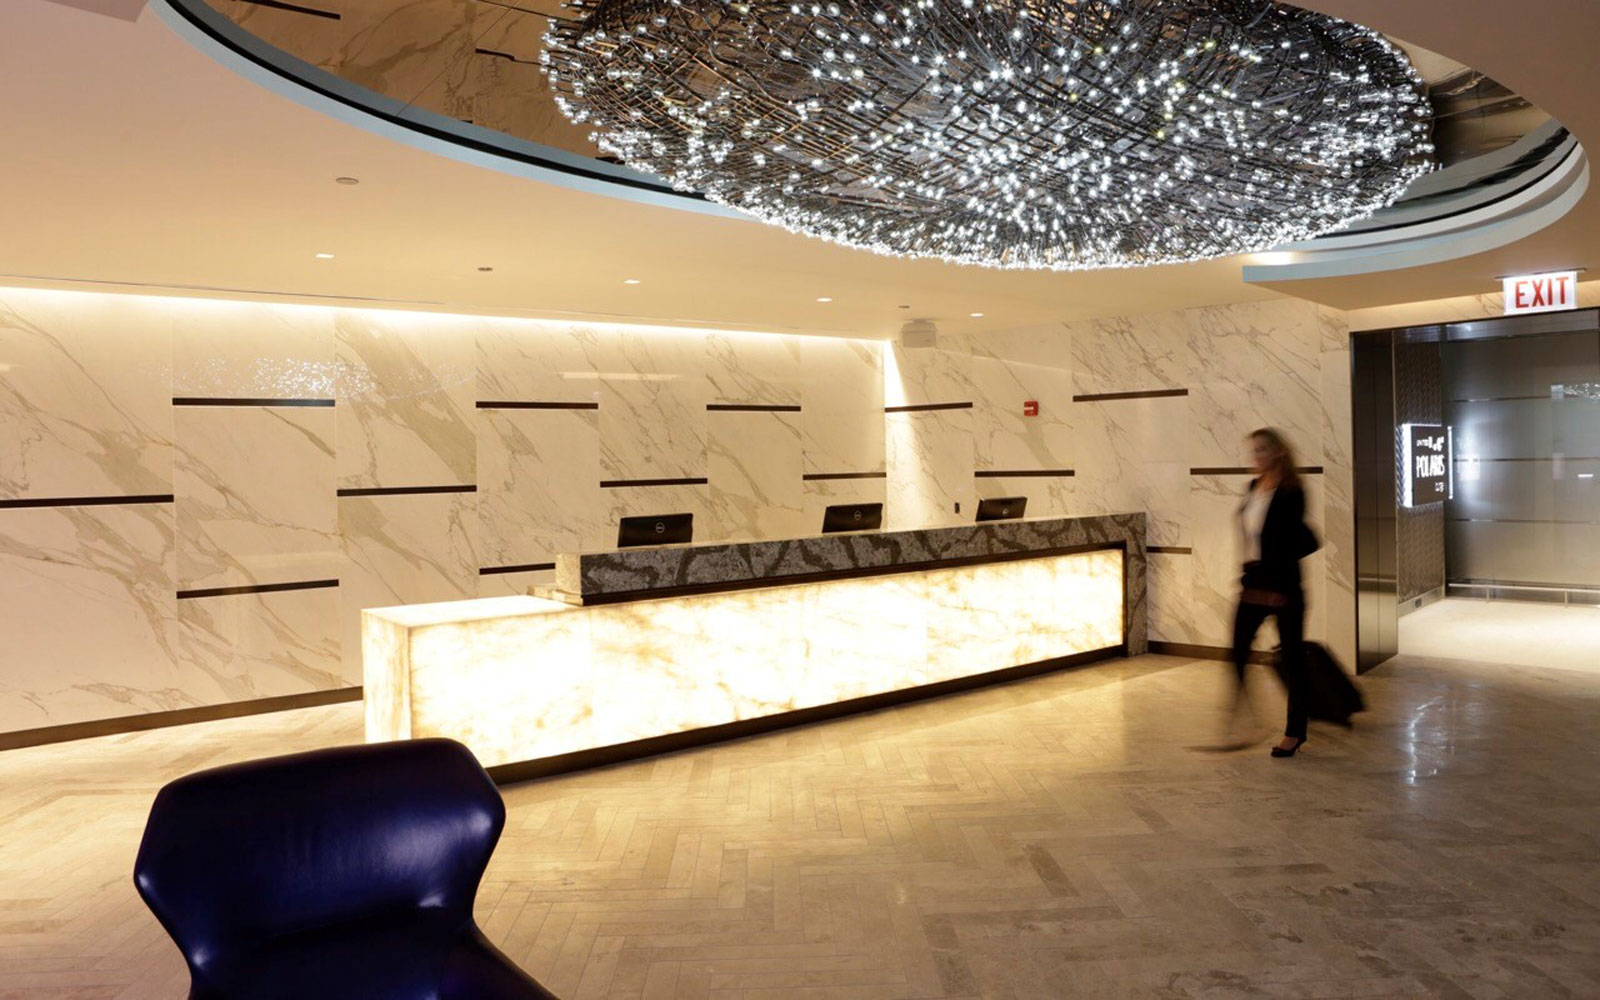 United unveiled its new Polaris lounge at Chicago O'Hare.